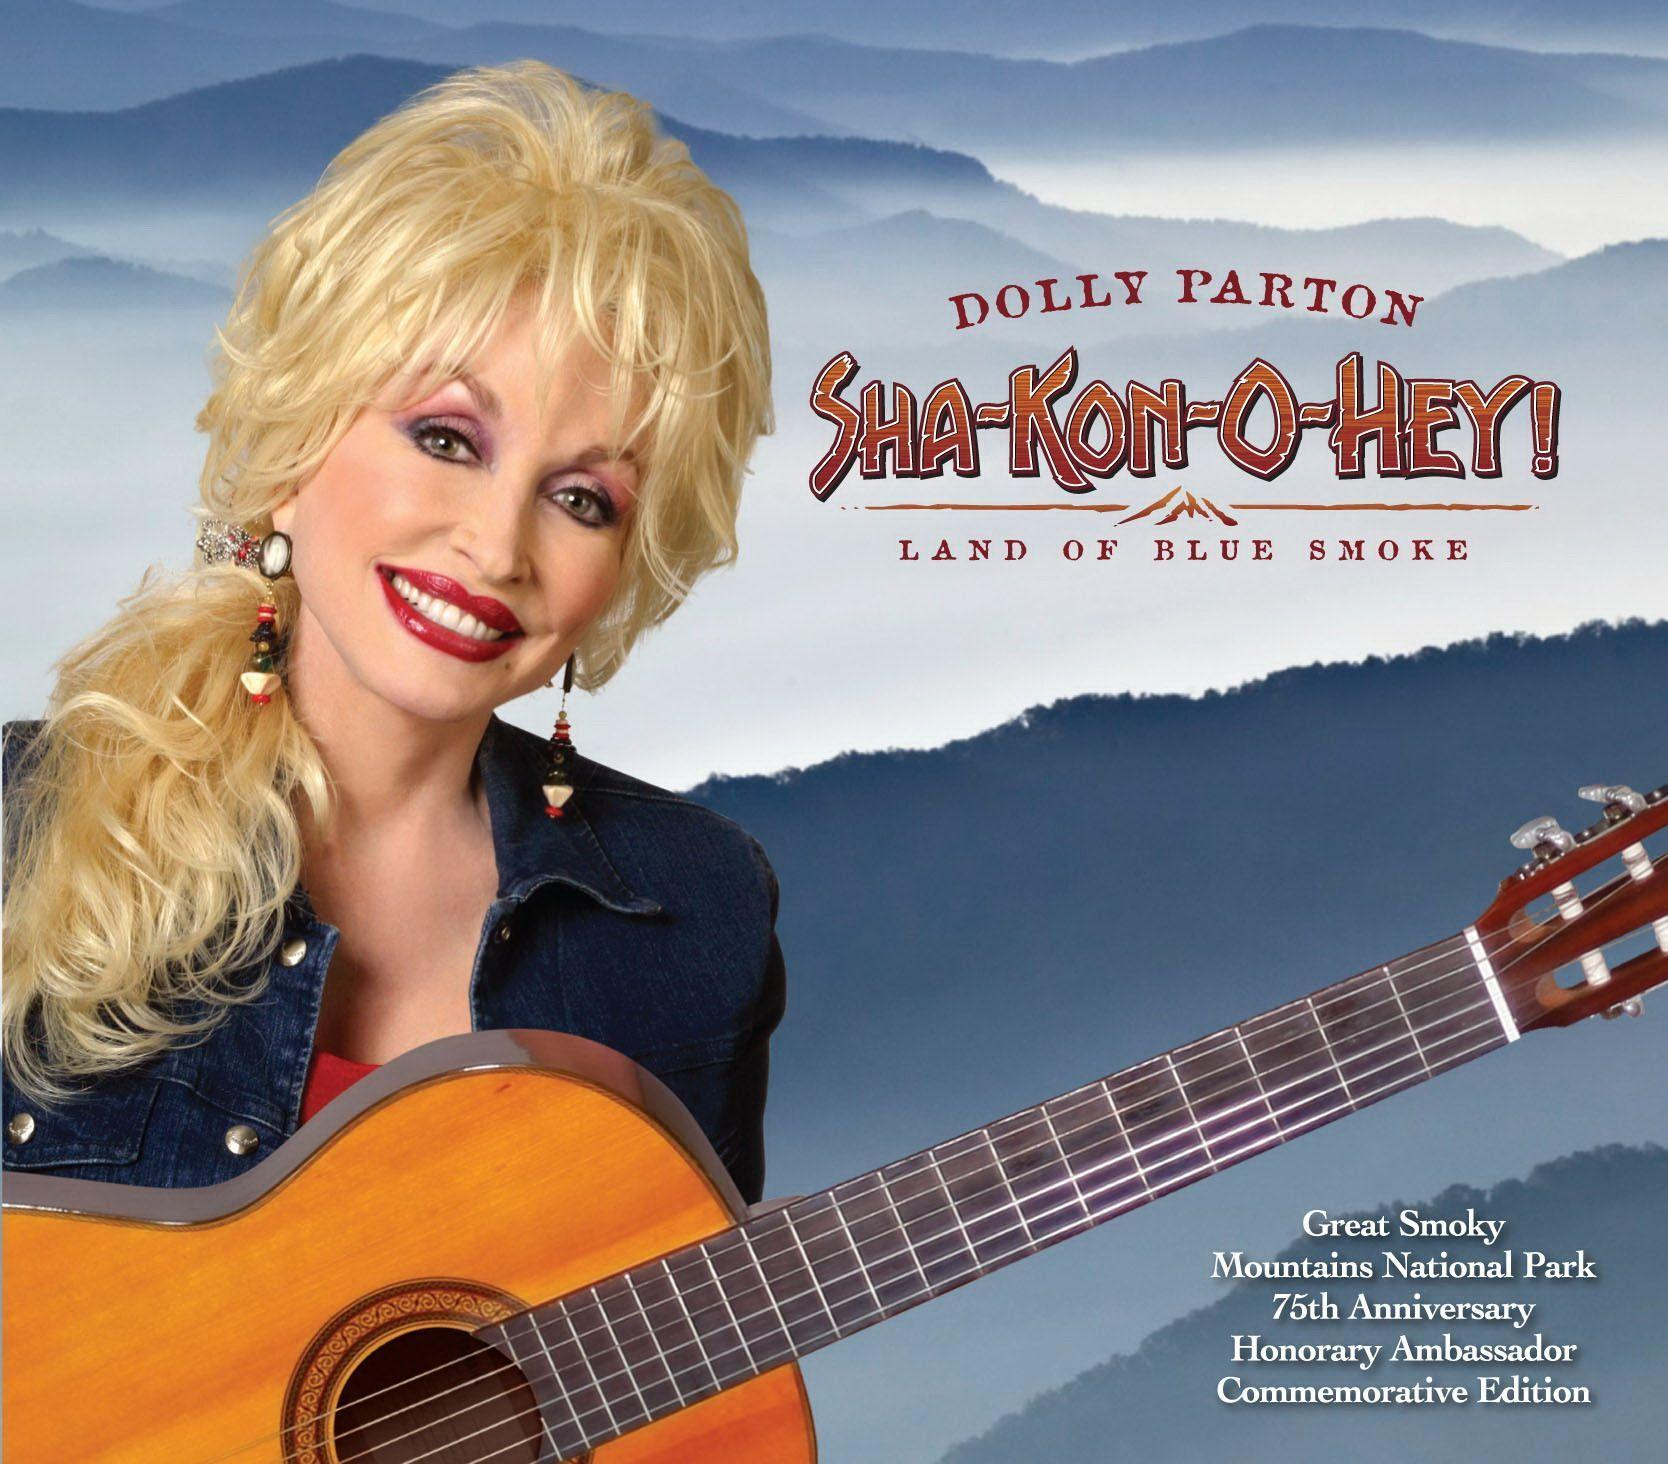 Dolly Parton Desktop Wallpaper - Wide Wallpapers